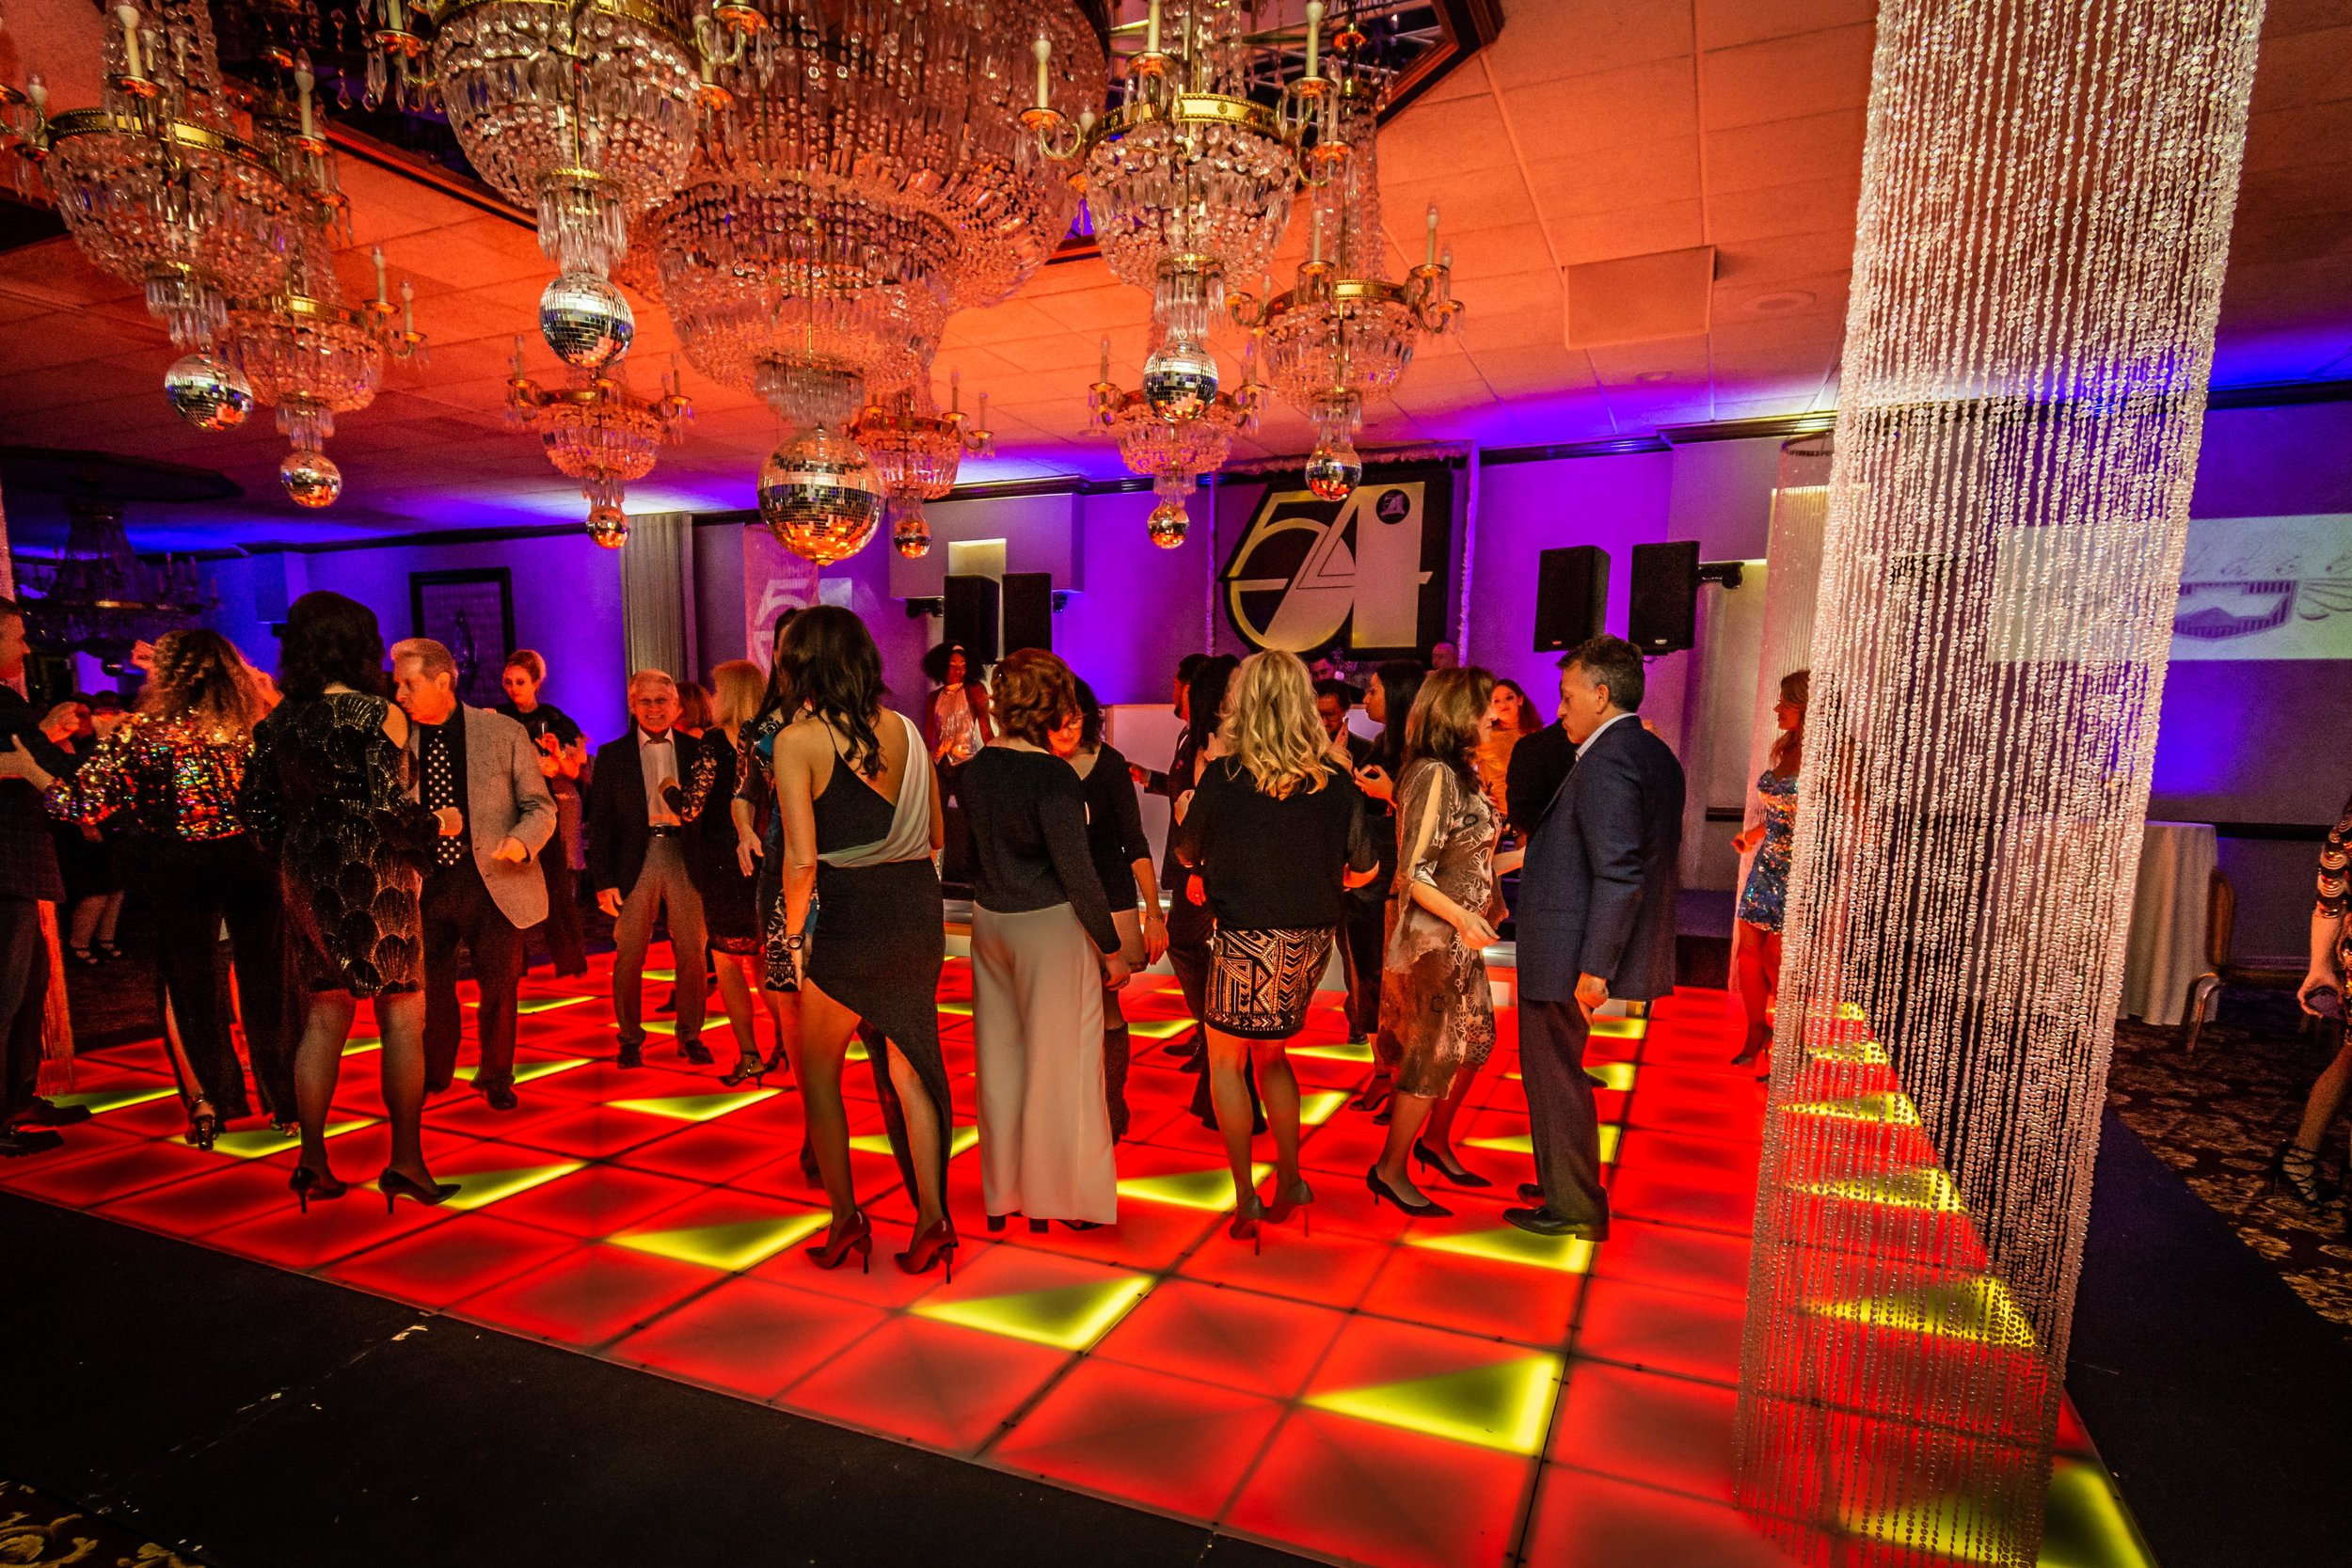 LED Dance Floor Red Yellow.jpg